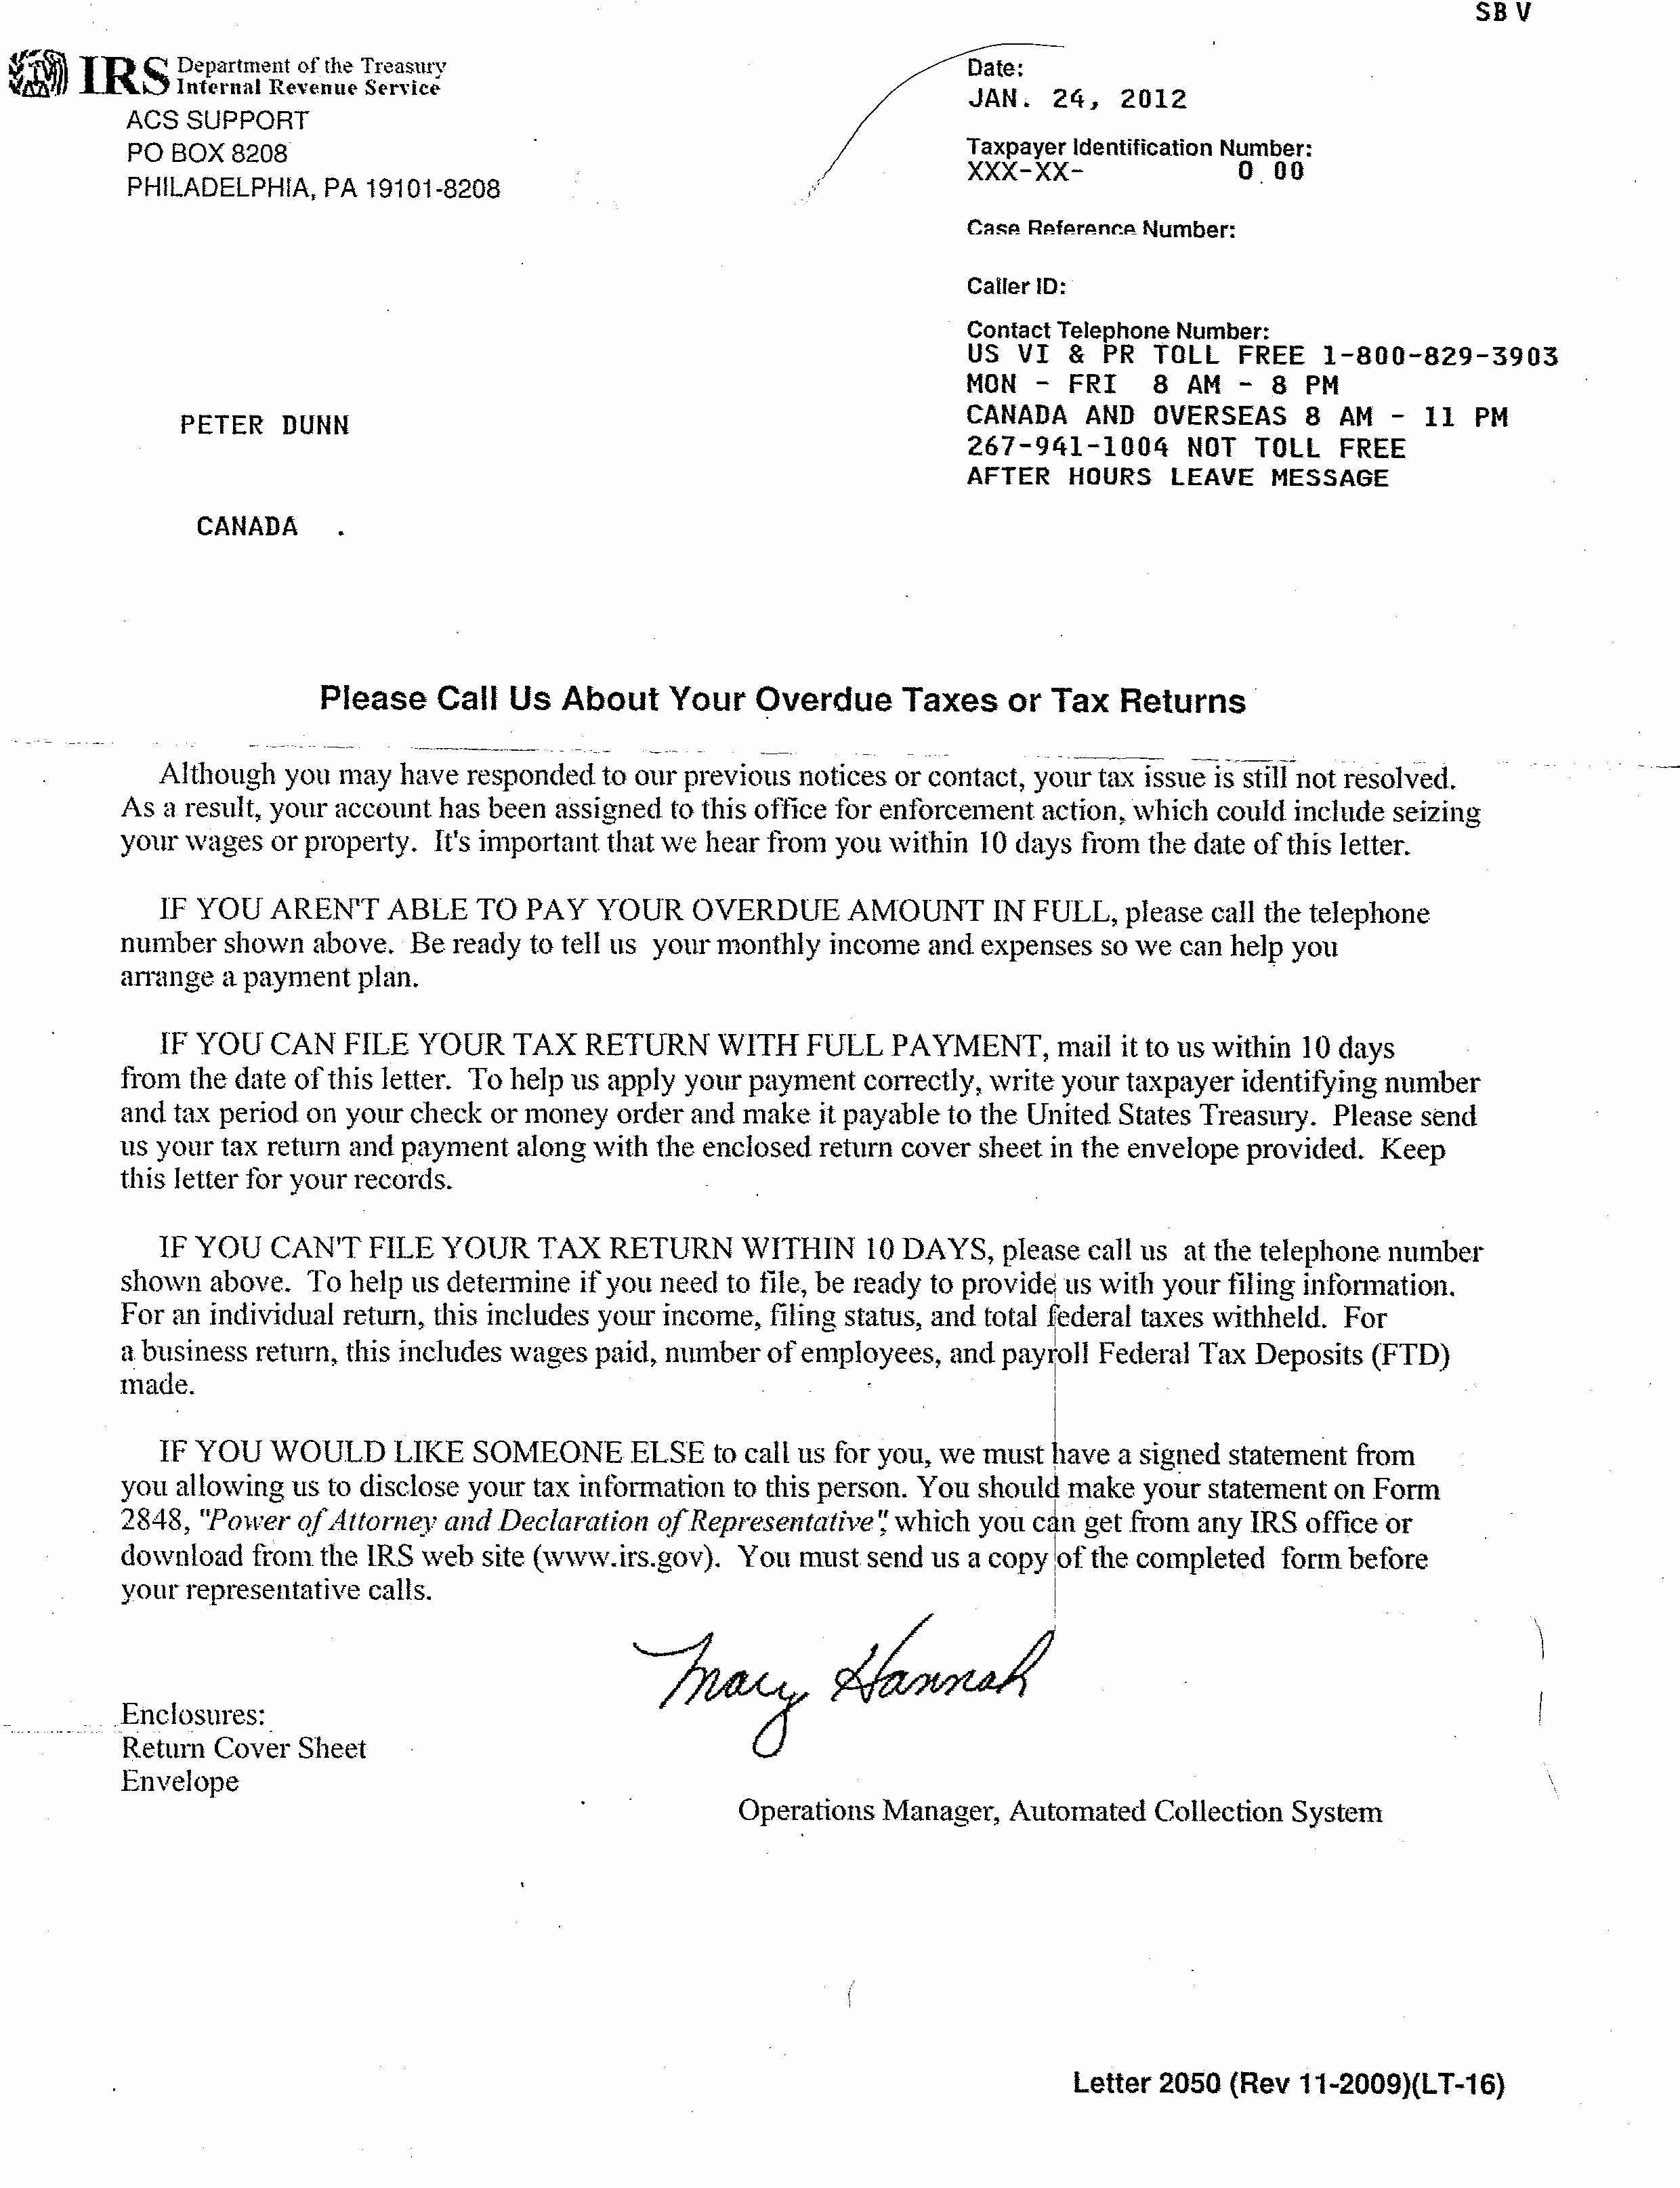 No Refunds Policy Template Lovely Letter From the Irs